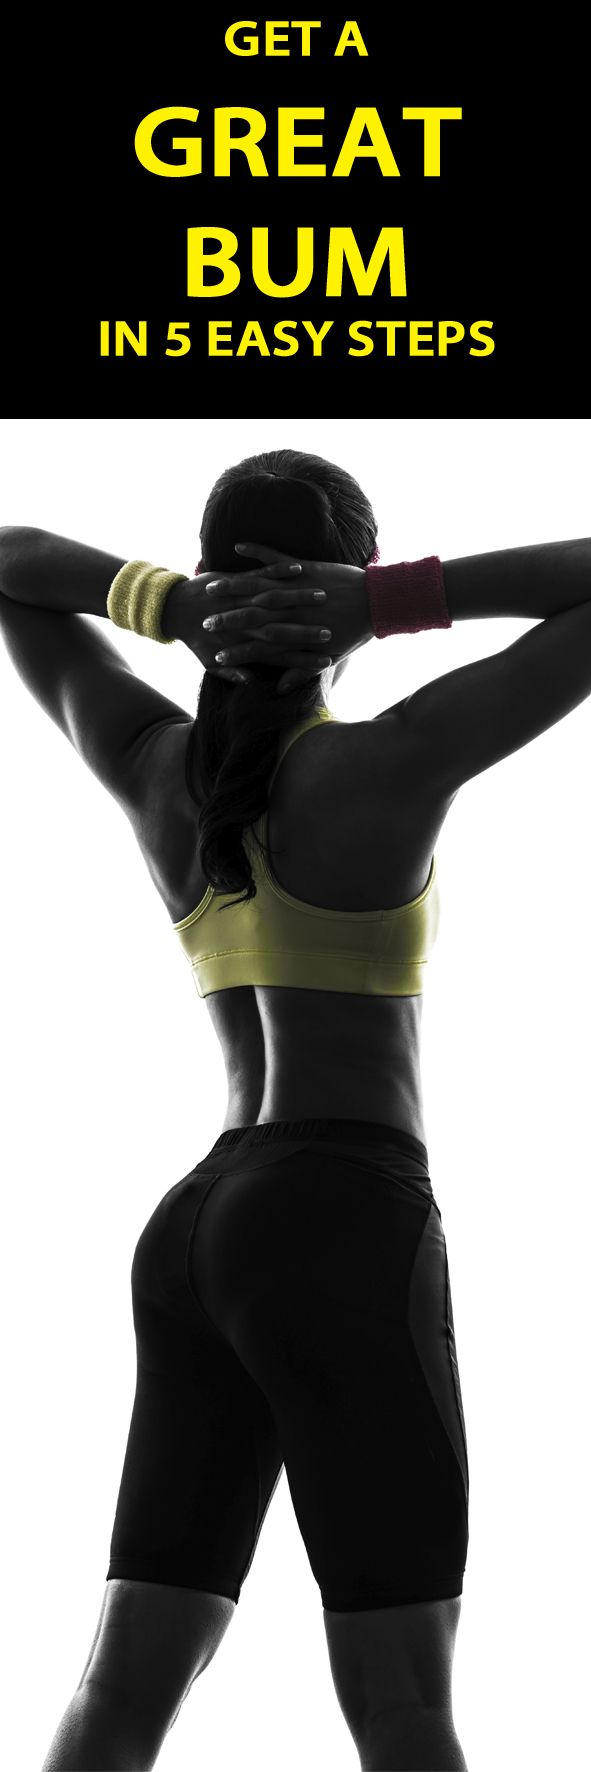 HOW TO GET A GREAT BUM: 5 EASY STEPS: http://thecyclingbug.co.uk/health-and-fitness/training-tips/b/weblog/archive/2014/06/06/how-to-get-buns-of-steel-5-easy-steps-for-cyclists.aspx?utm_source=Pinterest&utm_medium=Pinterest%20Post&utm_campaign=ad #fitness